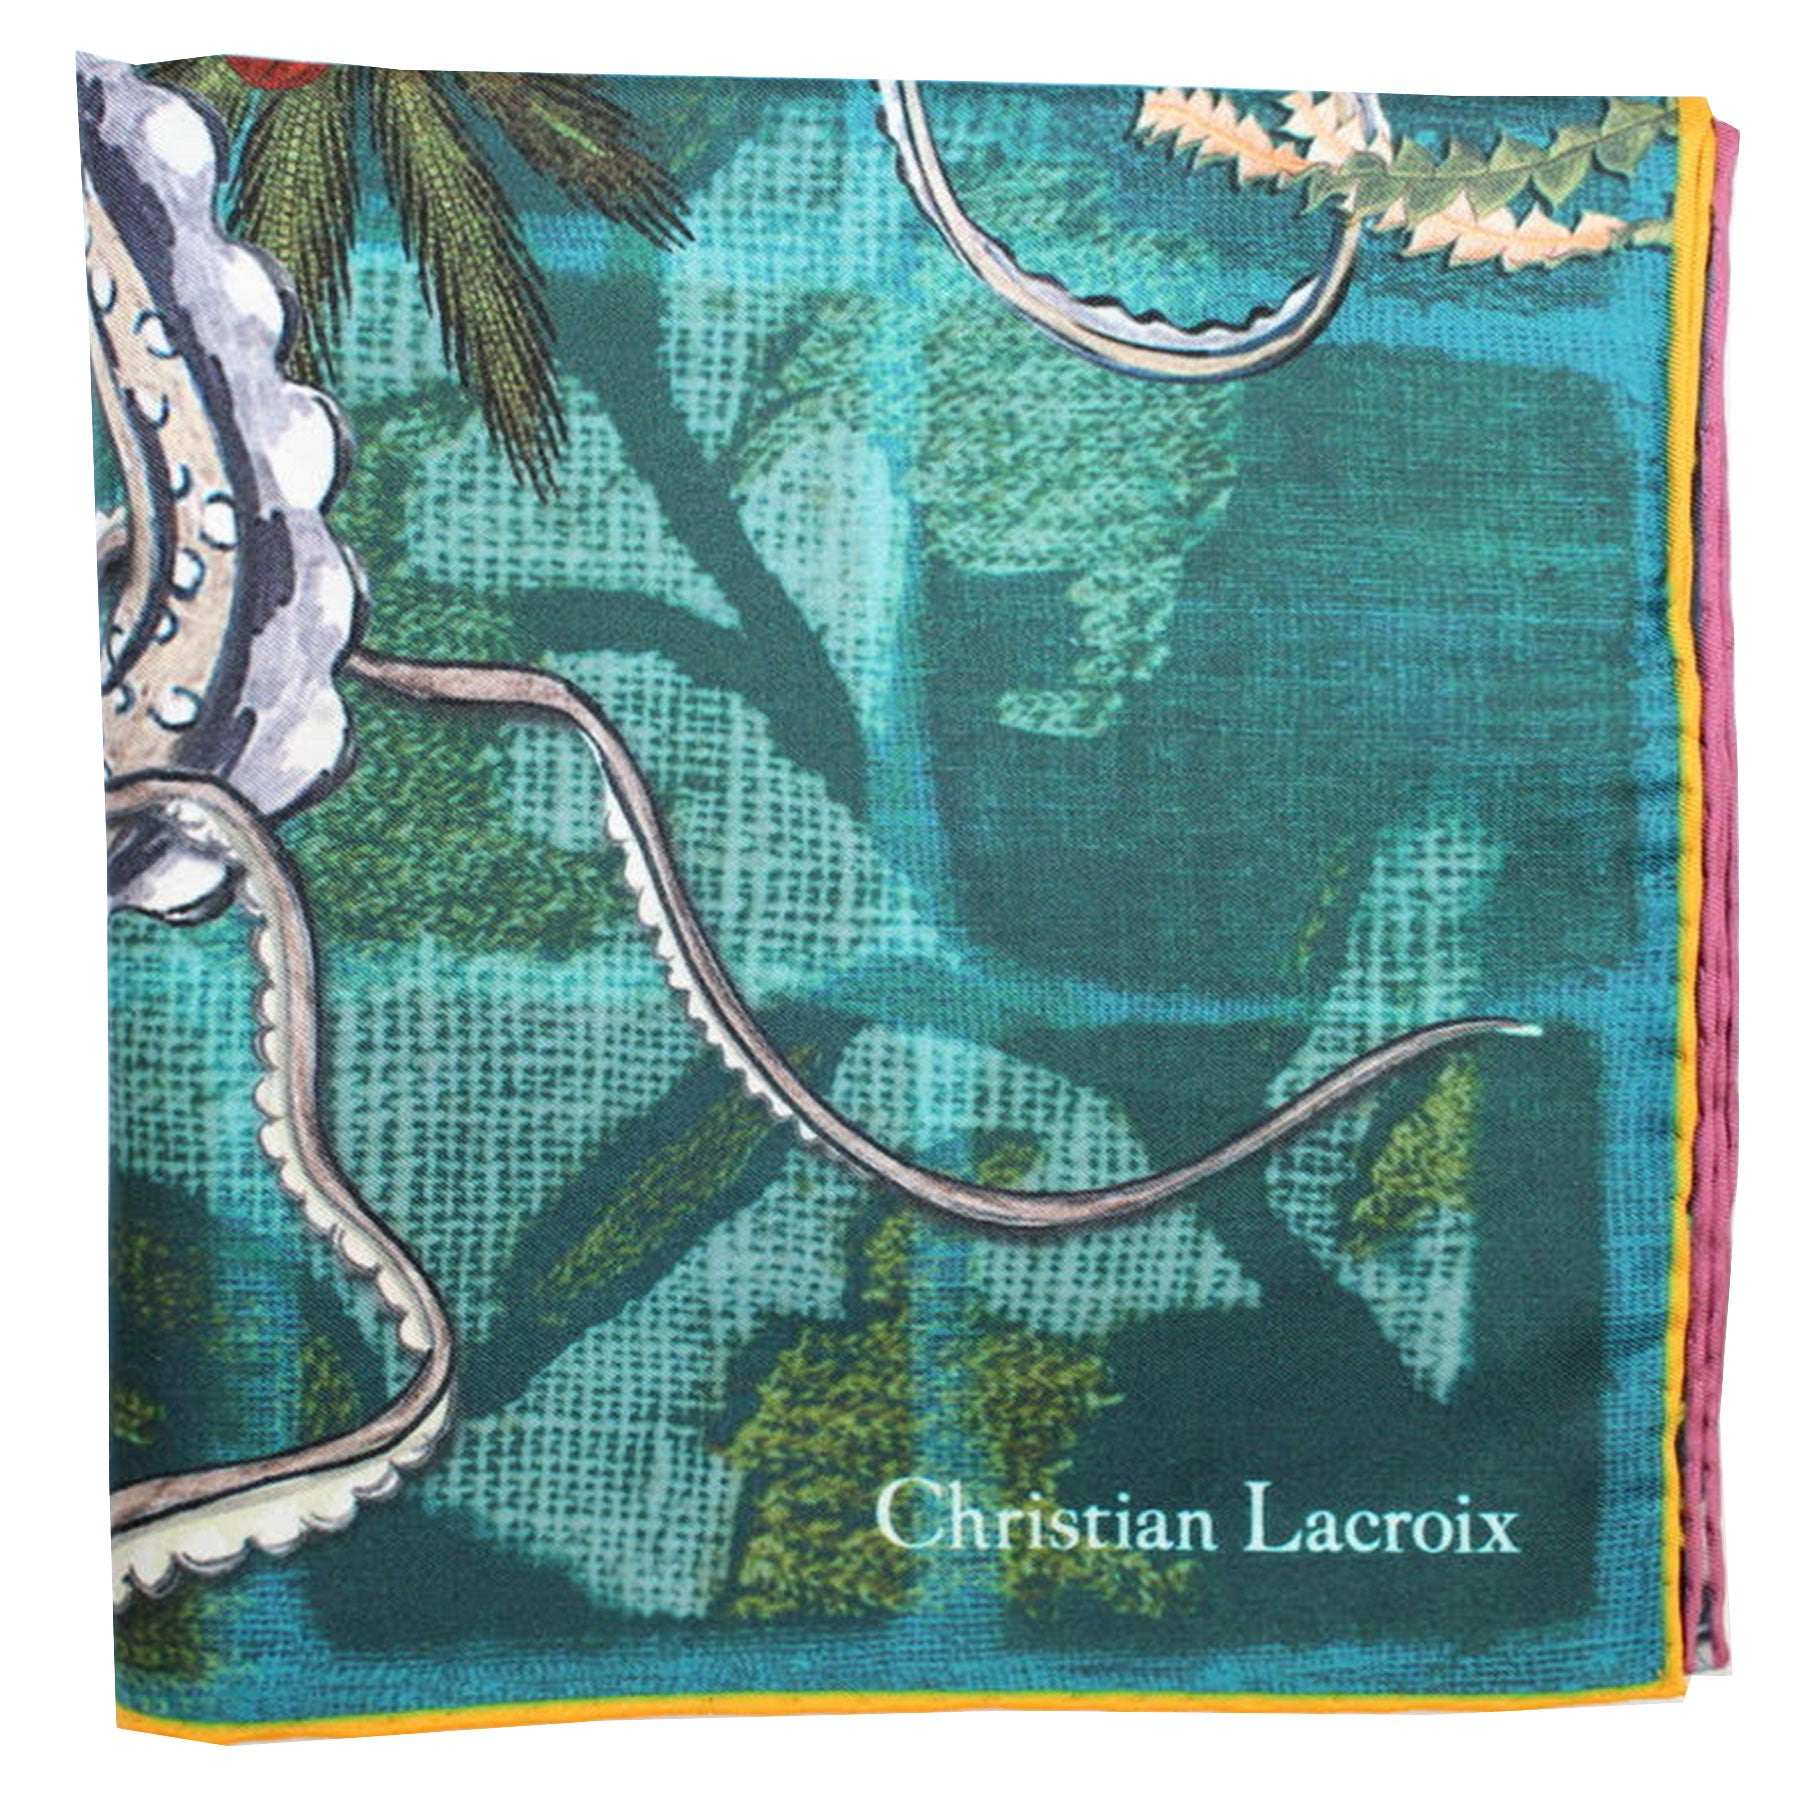 "Christian Lacroix Scarf Emerald Orange Purple Design - Large Twill Silk 36"" Square Scarf"